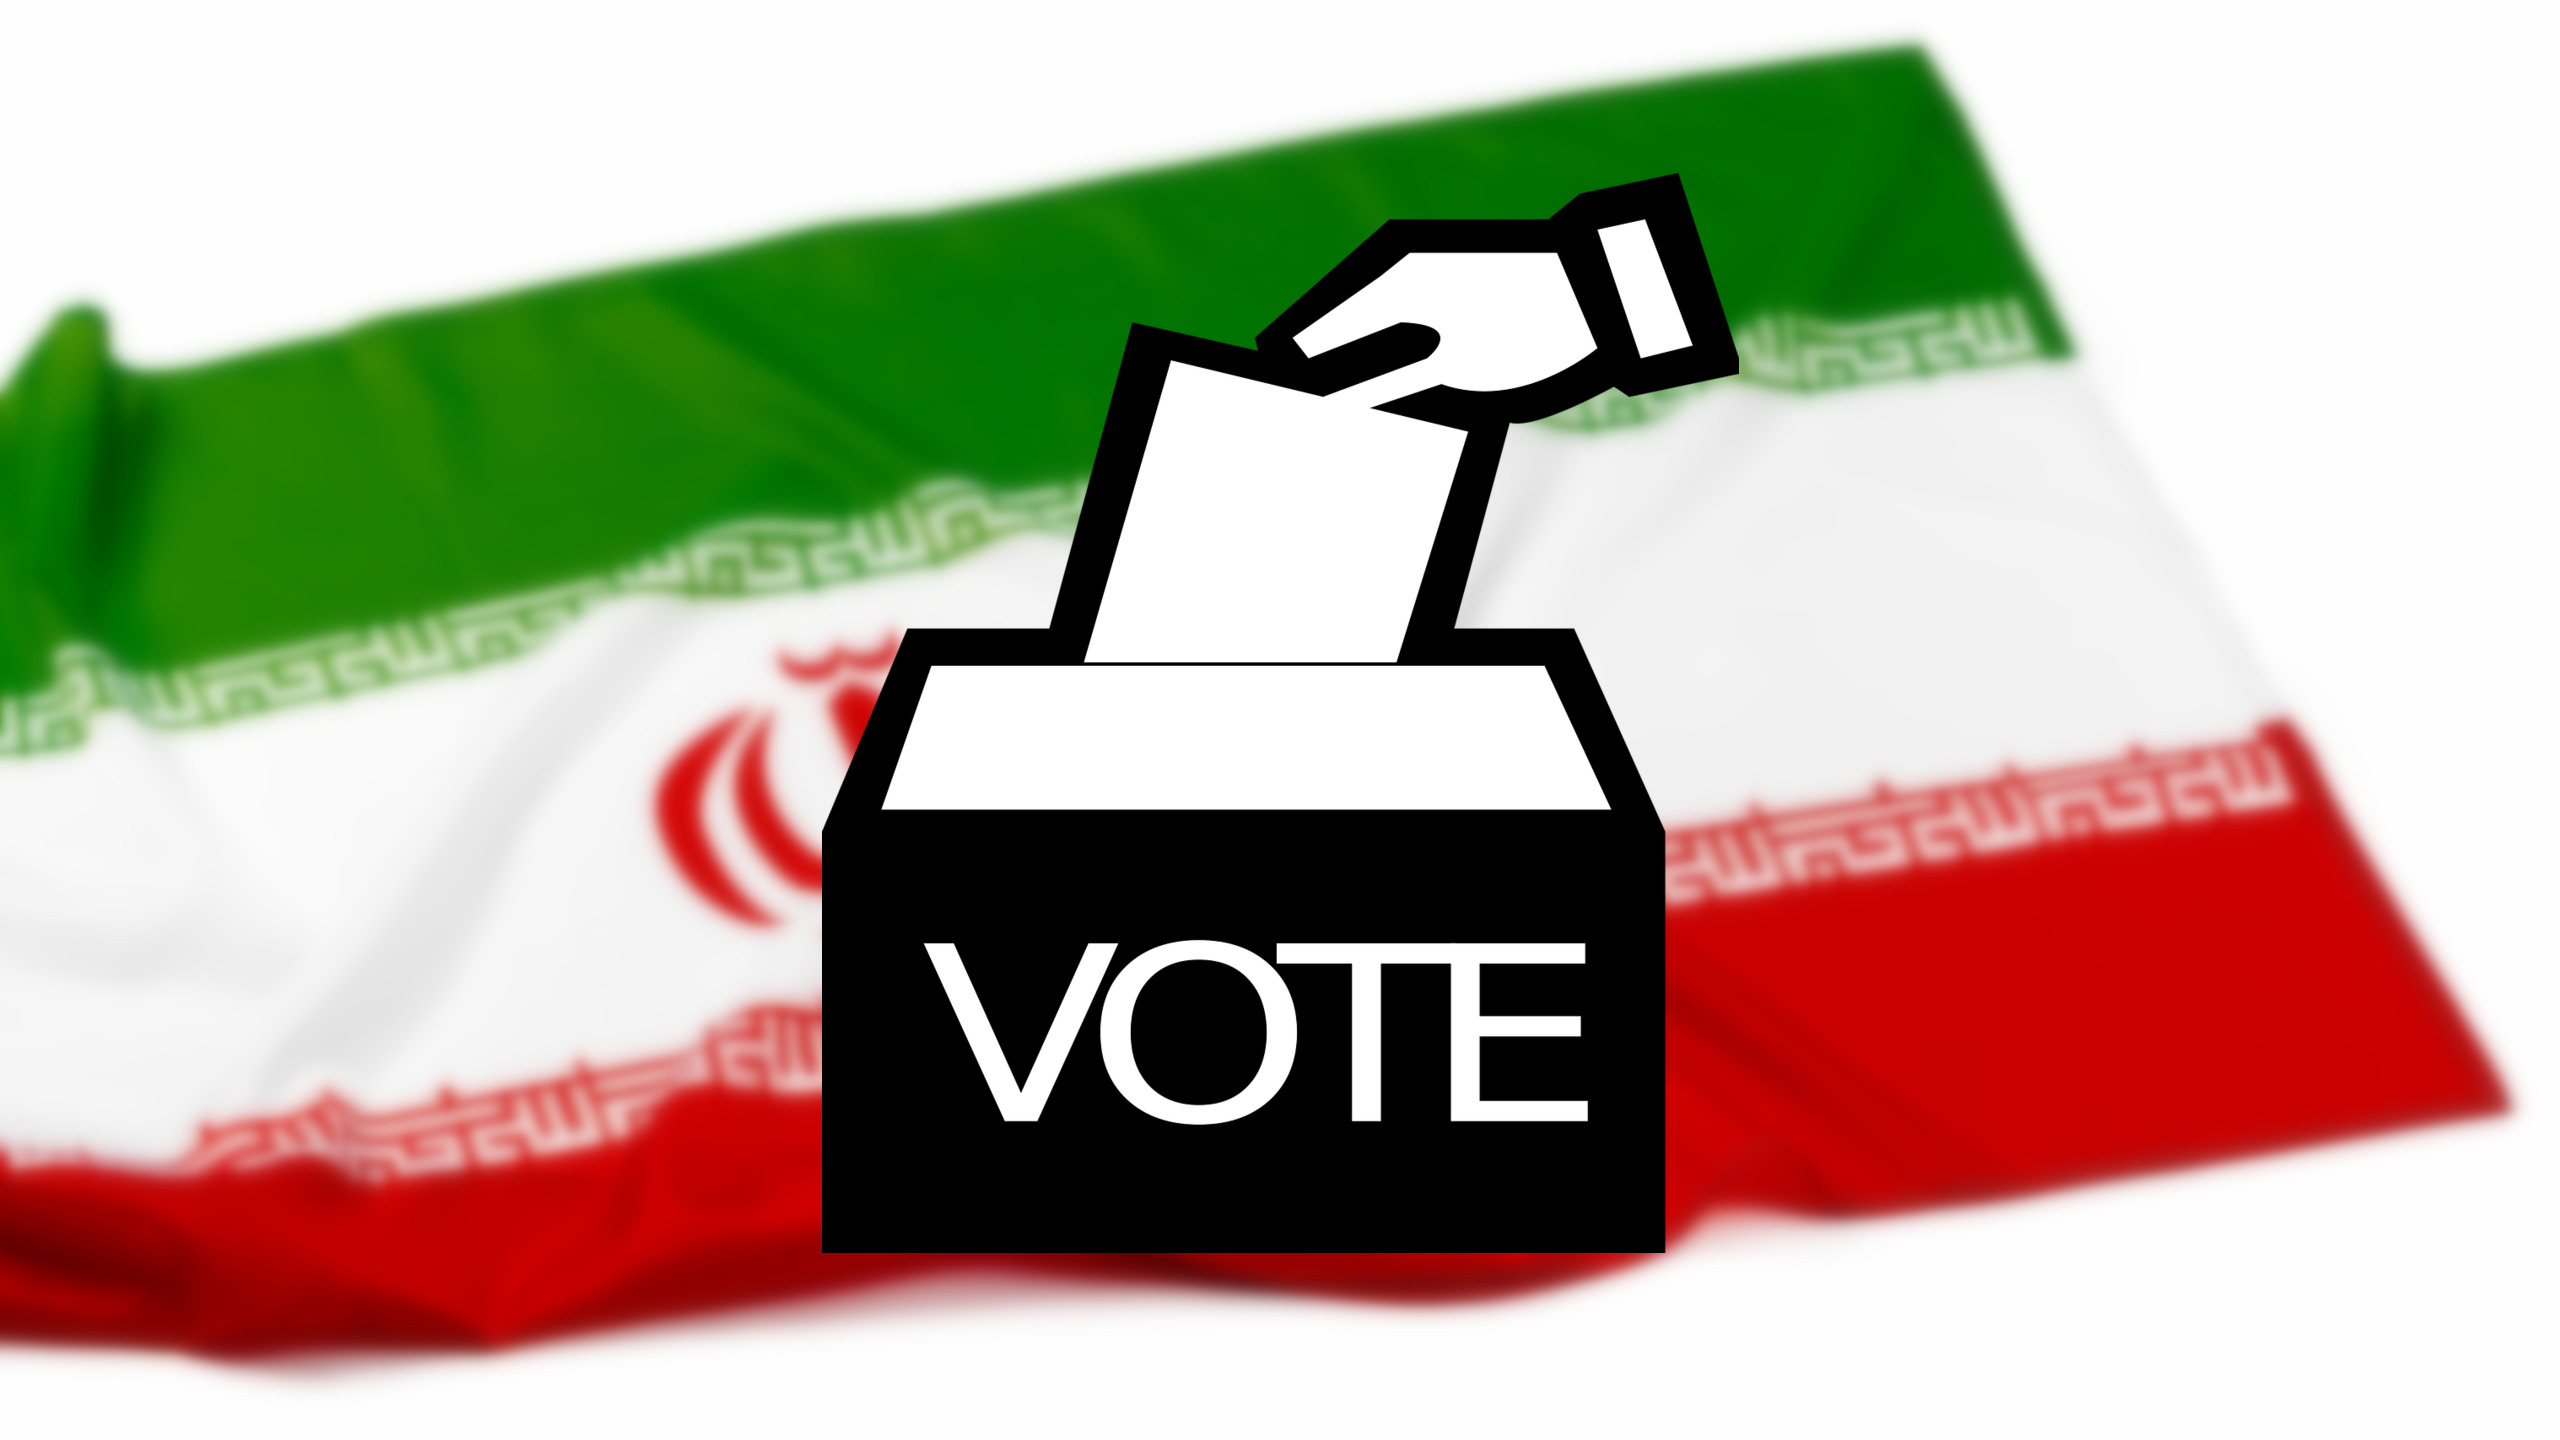 Calling All Iranian Presidential Candidates, Moderates Need Not Apply